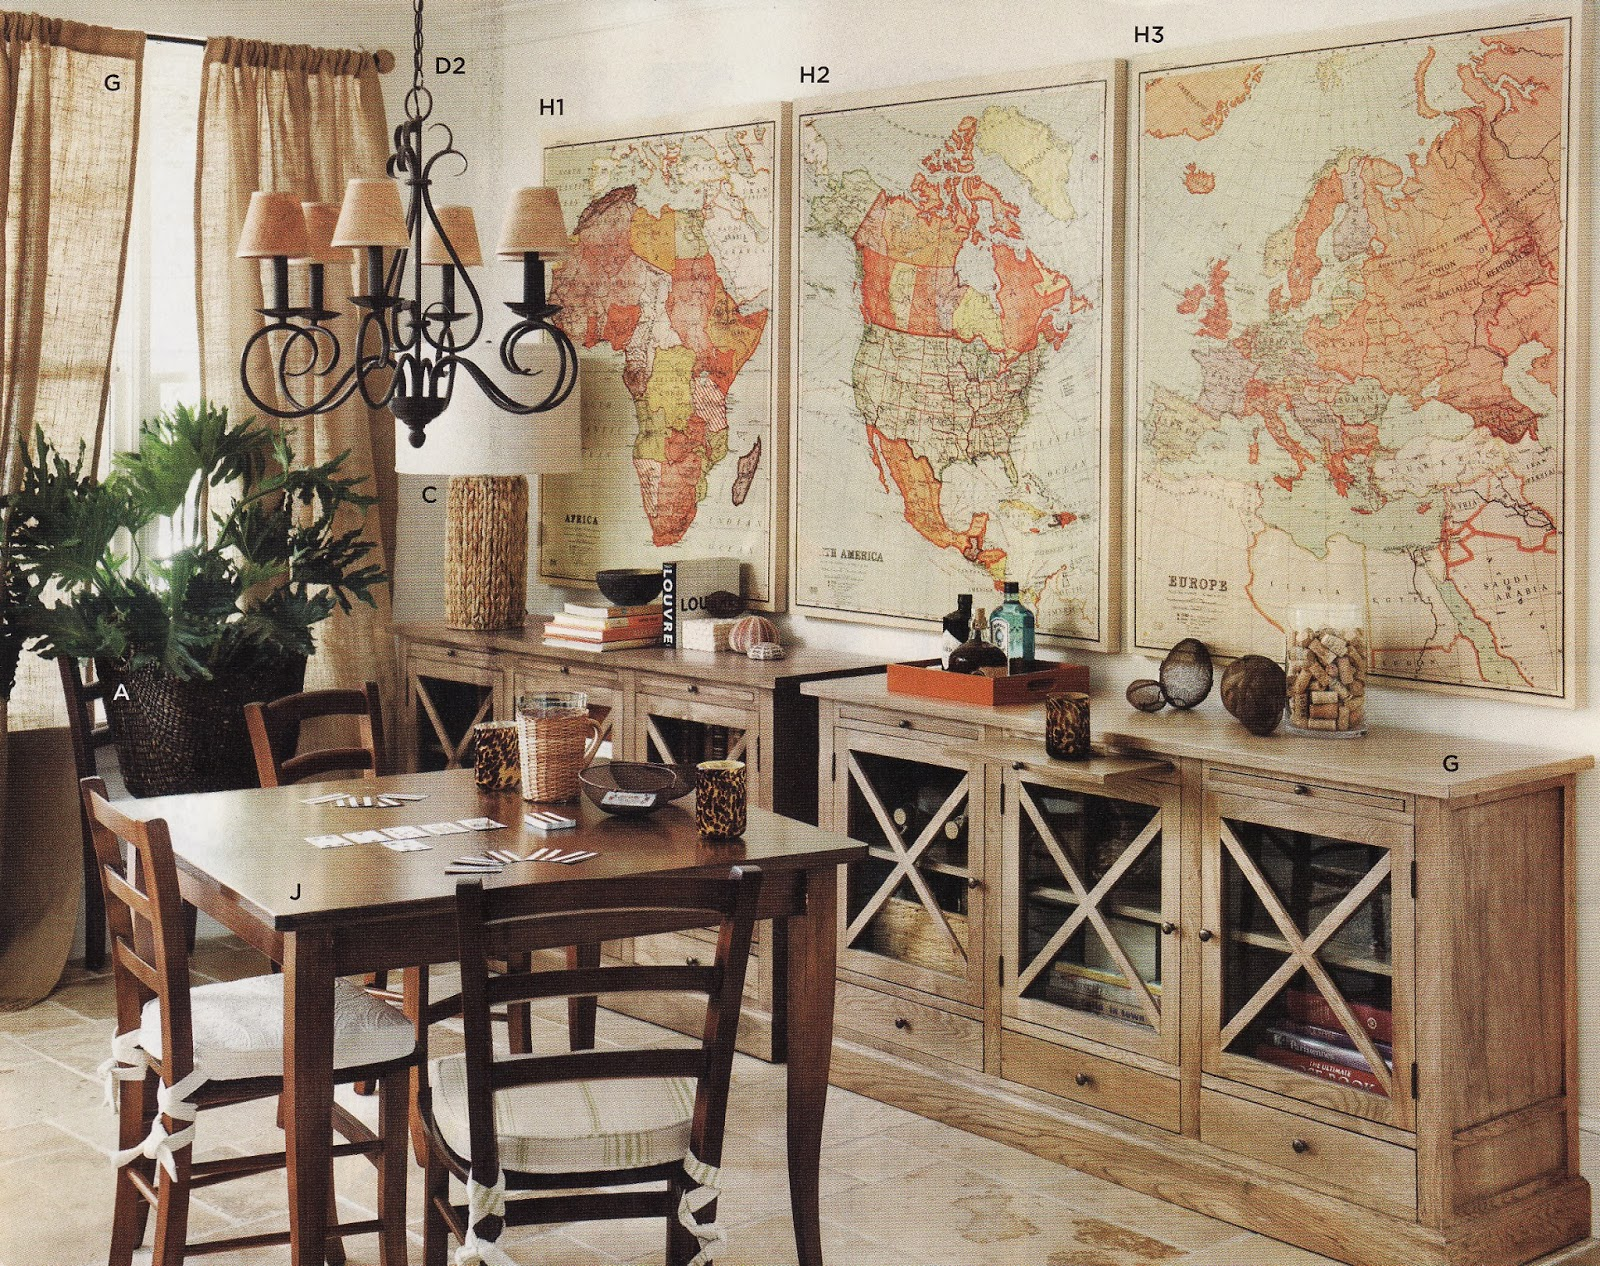 Creative juices decor oh for the love of maps home for Antique home decoration